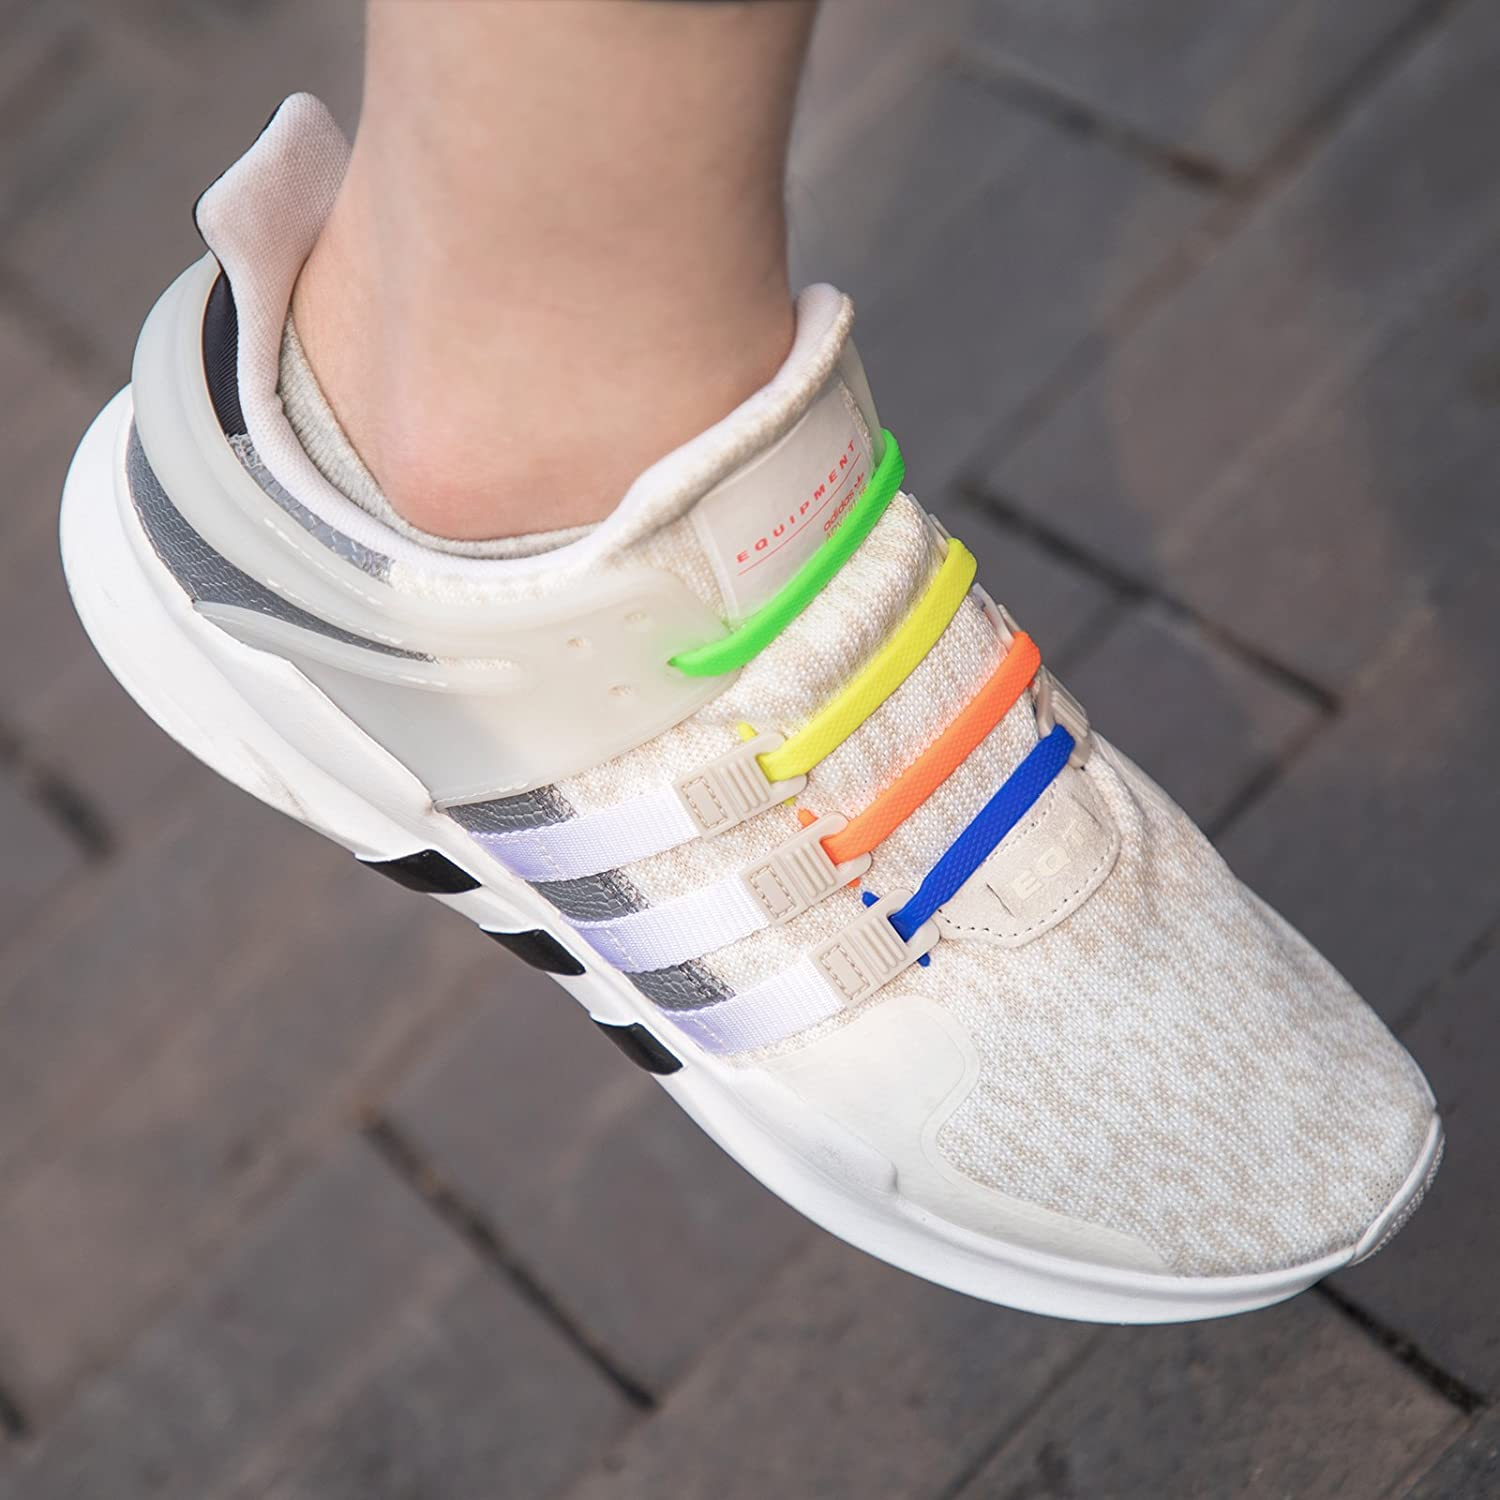 Silicone Tieless Laces Elastic Shoe Laces for Sneakers INMAKER No Tie Shoelaces for Kids and Adults